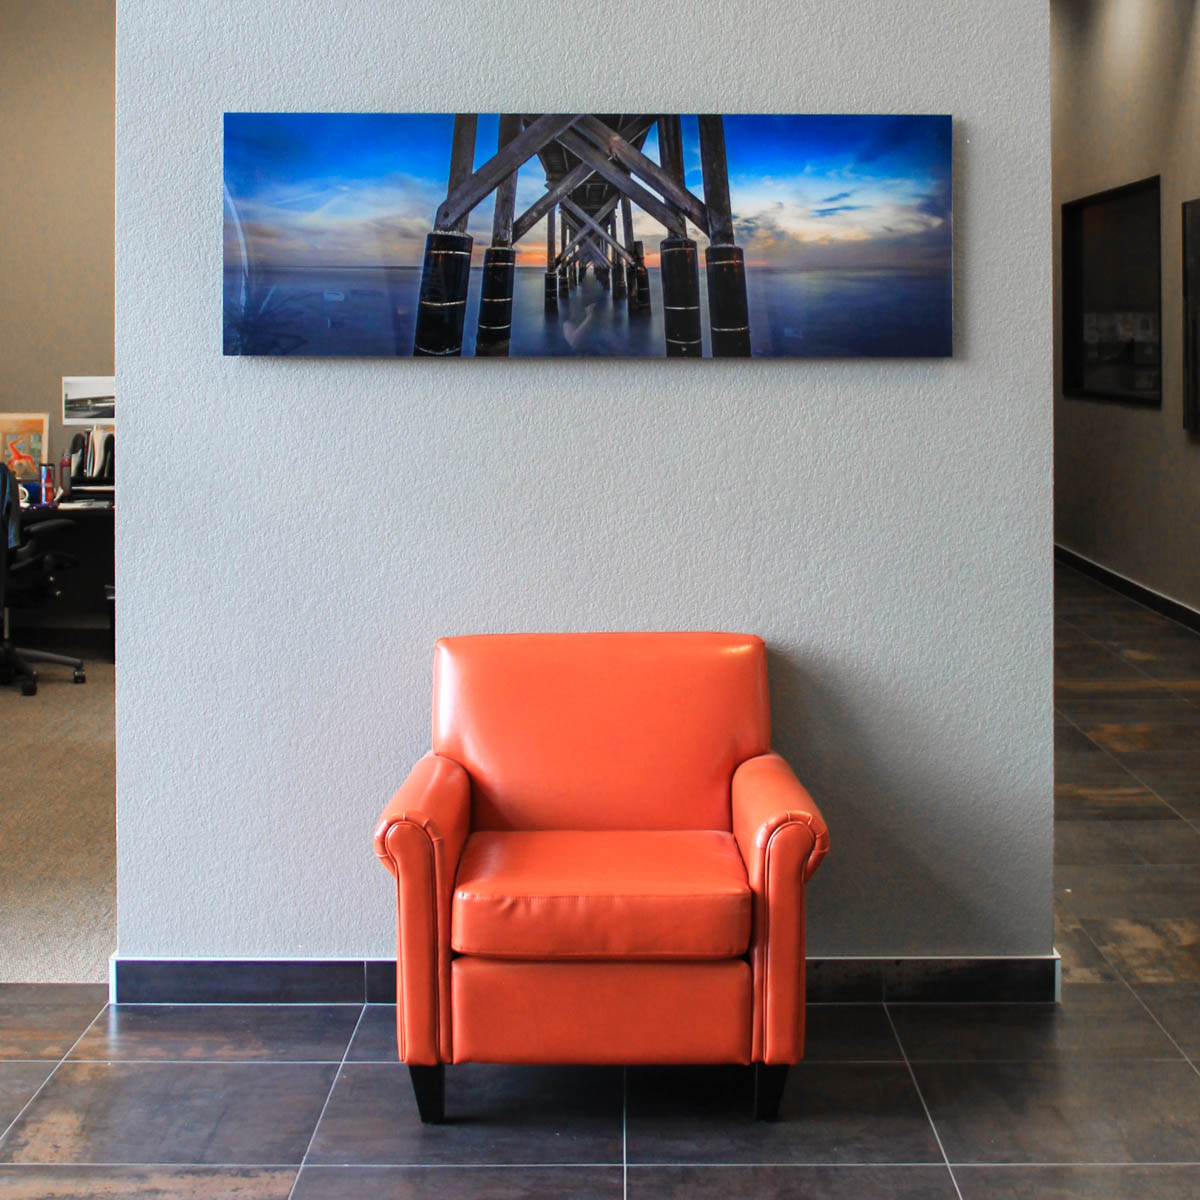 Face Mounted Plexiglass Acrylic Print Over Office Chair